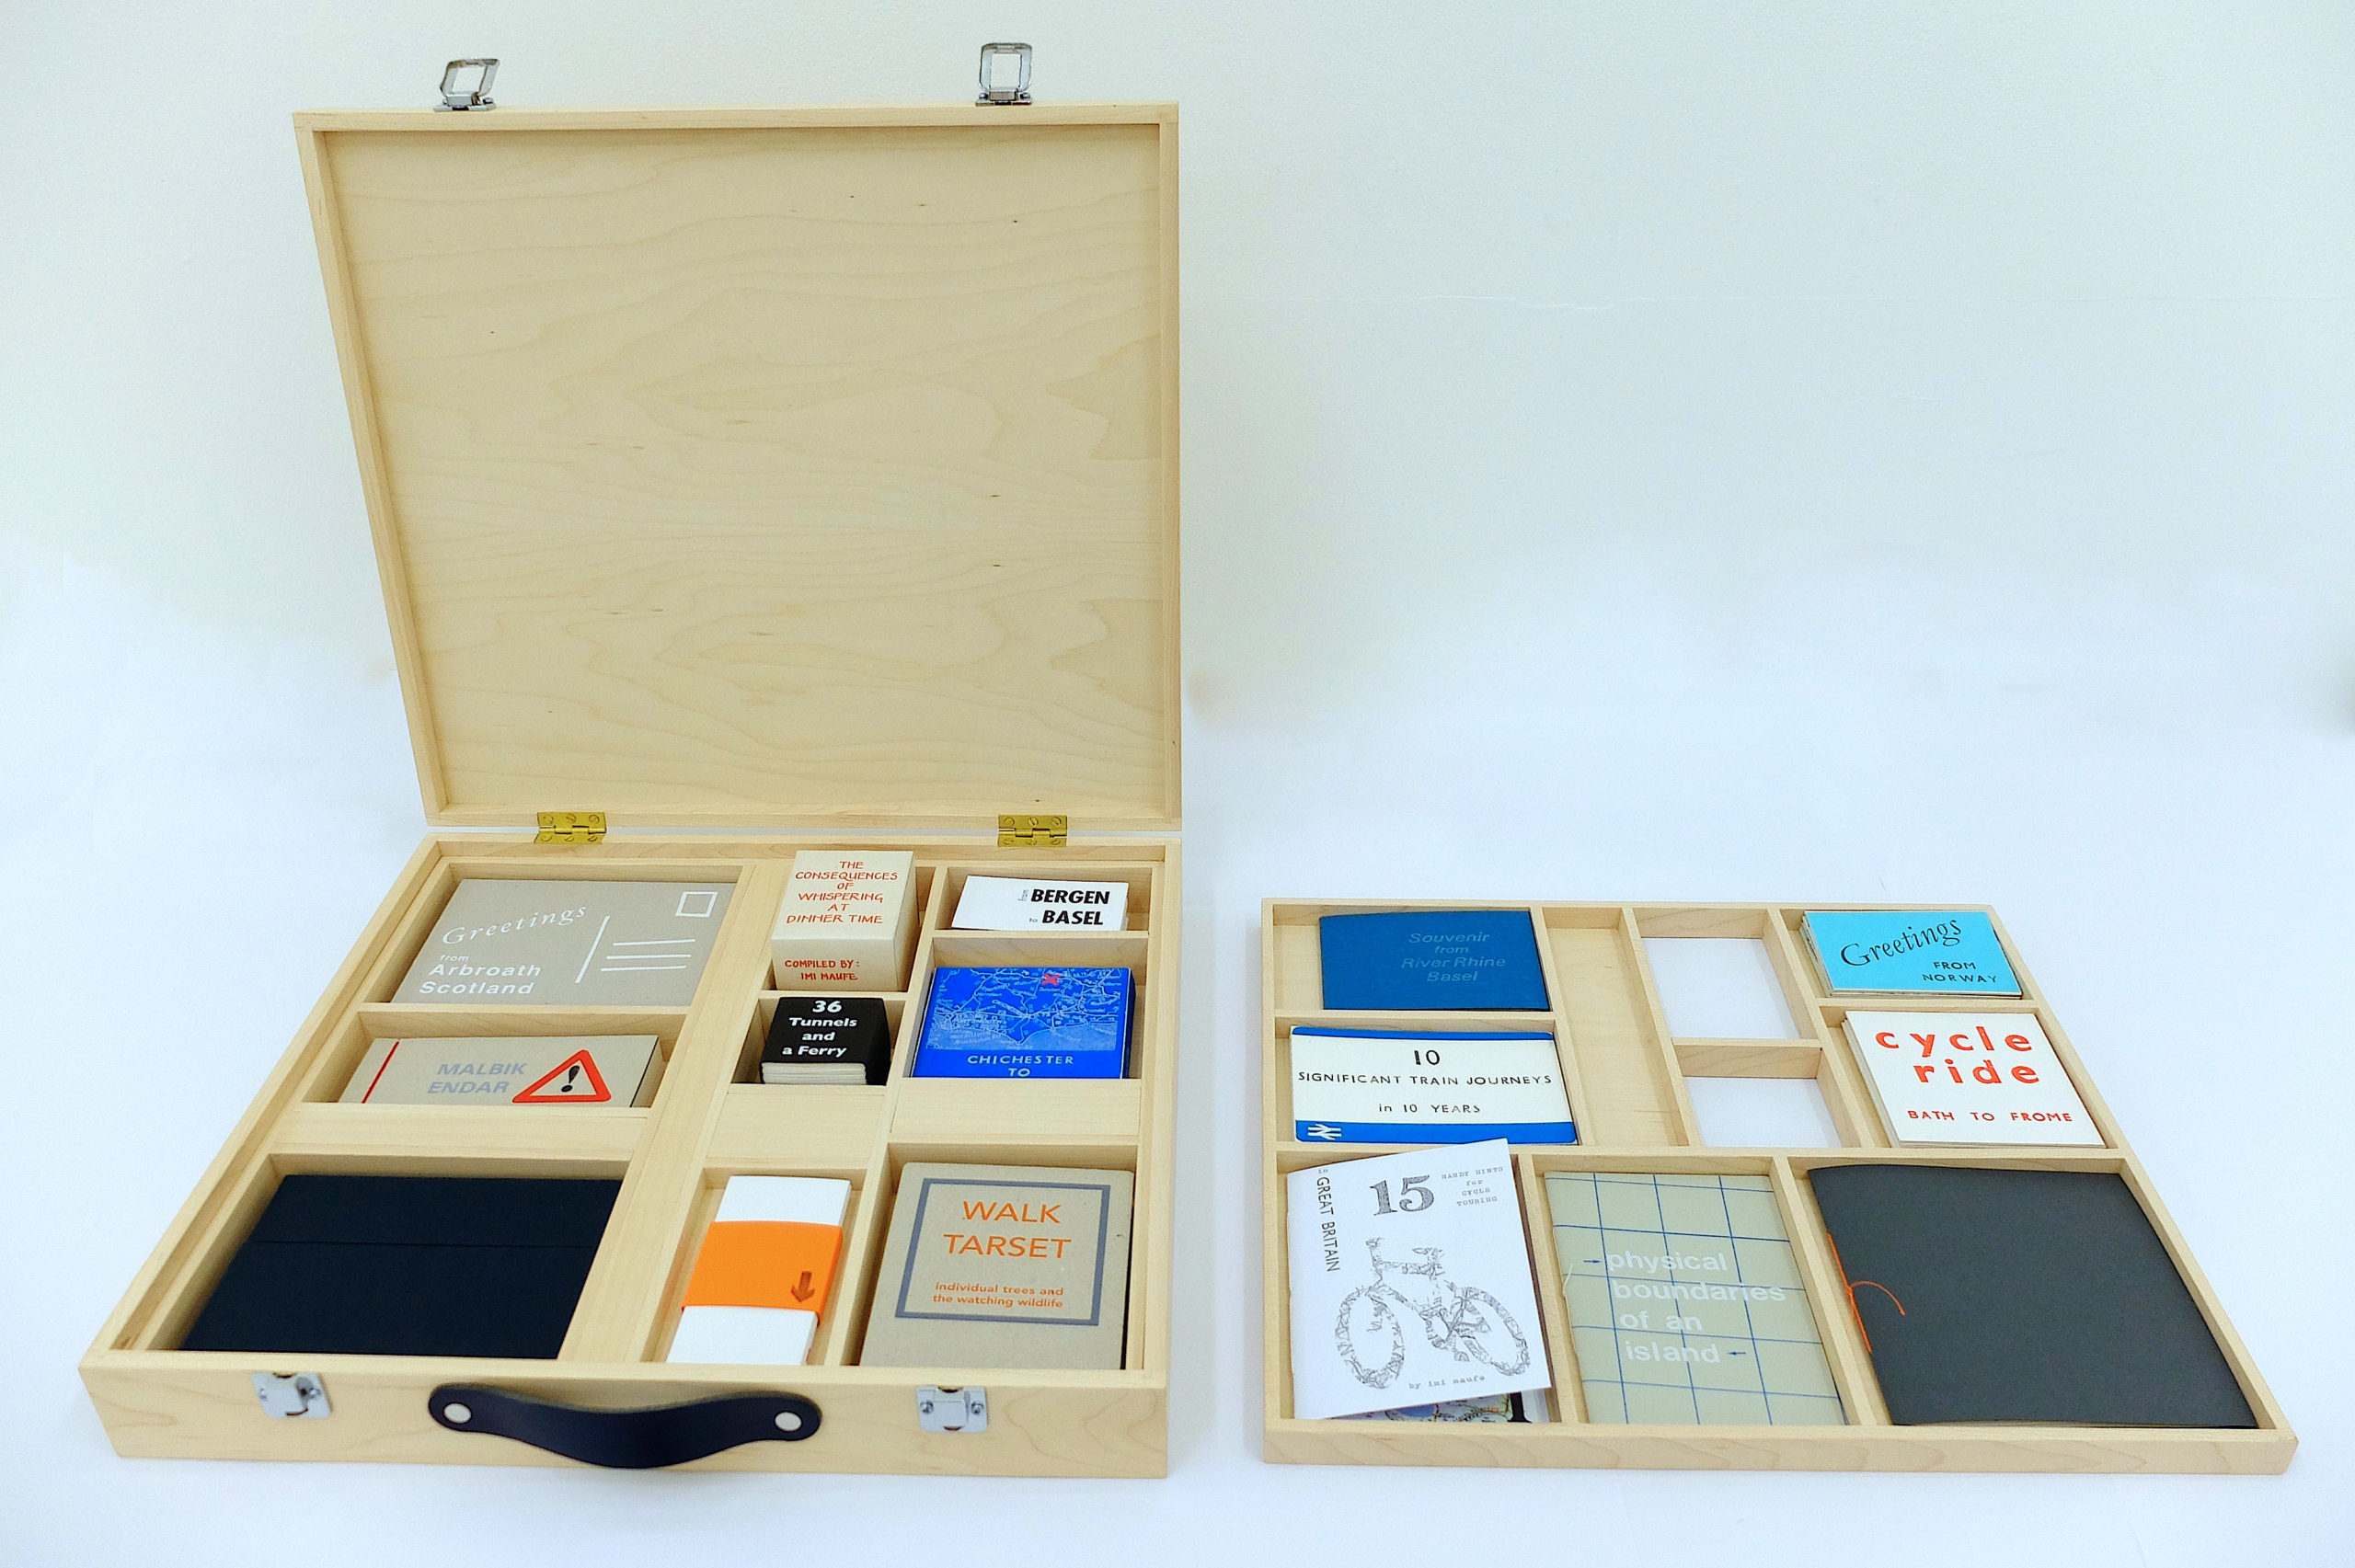 Image of an opened suitcase with several compartments with different books of an array of sizes and shapes.